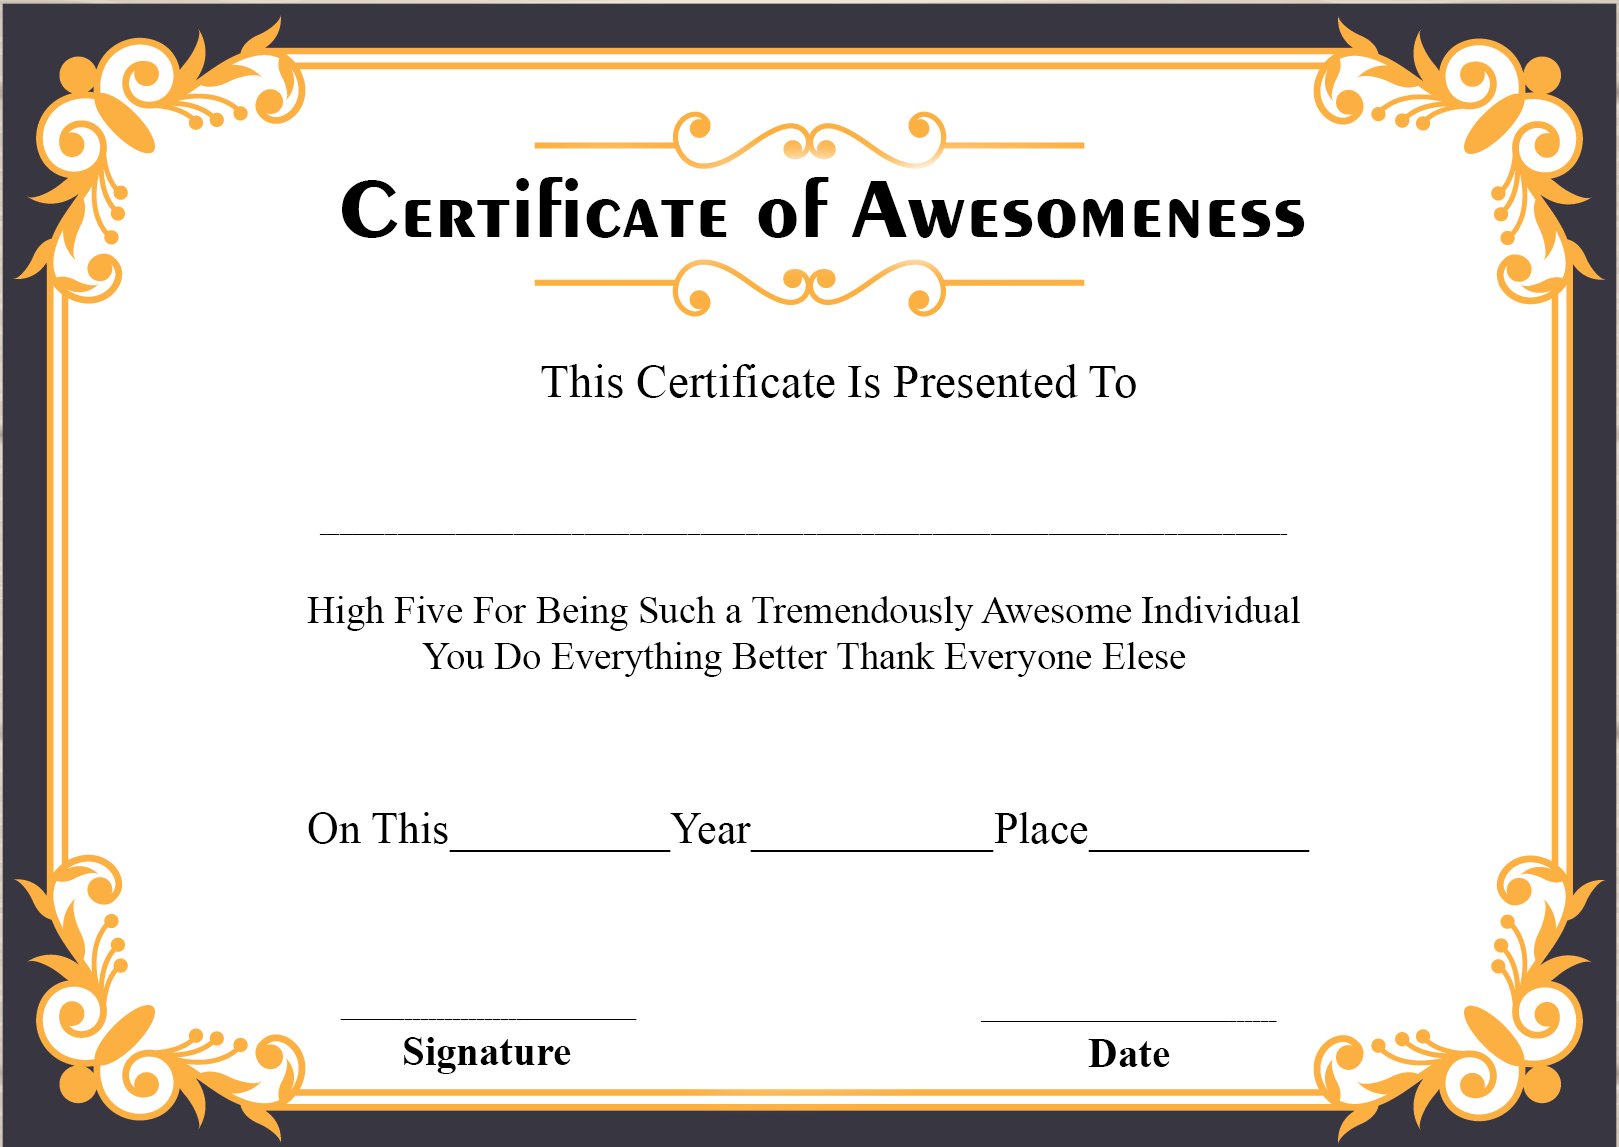 Certificate of Awesomeness Printable